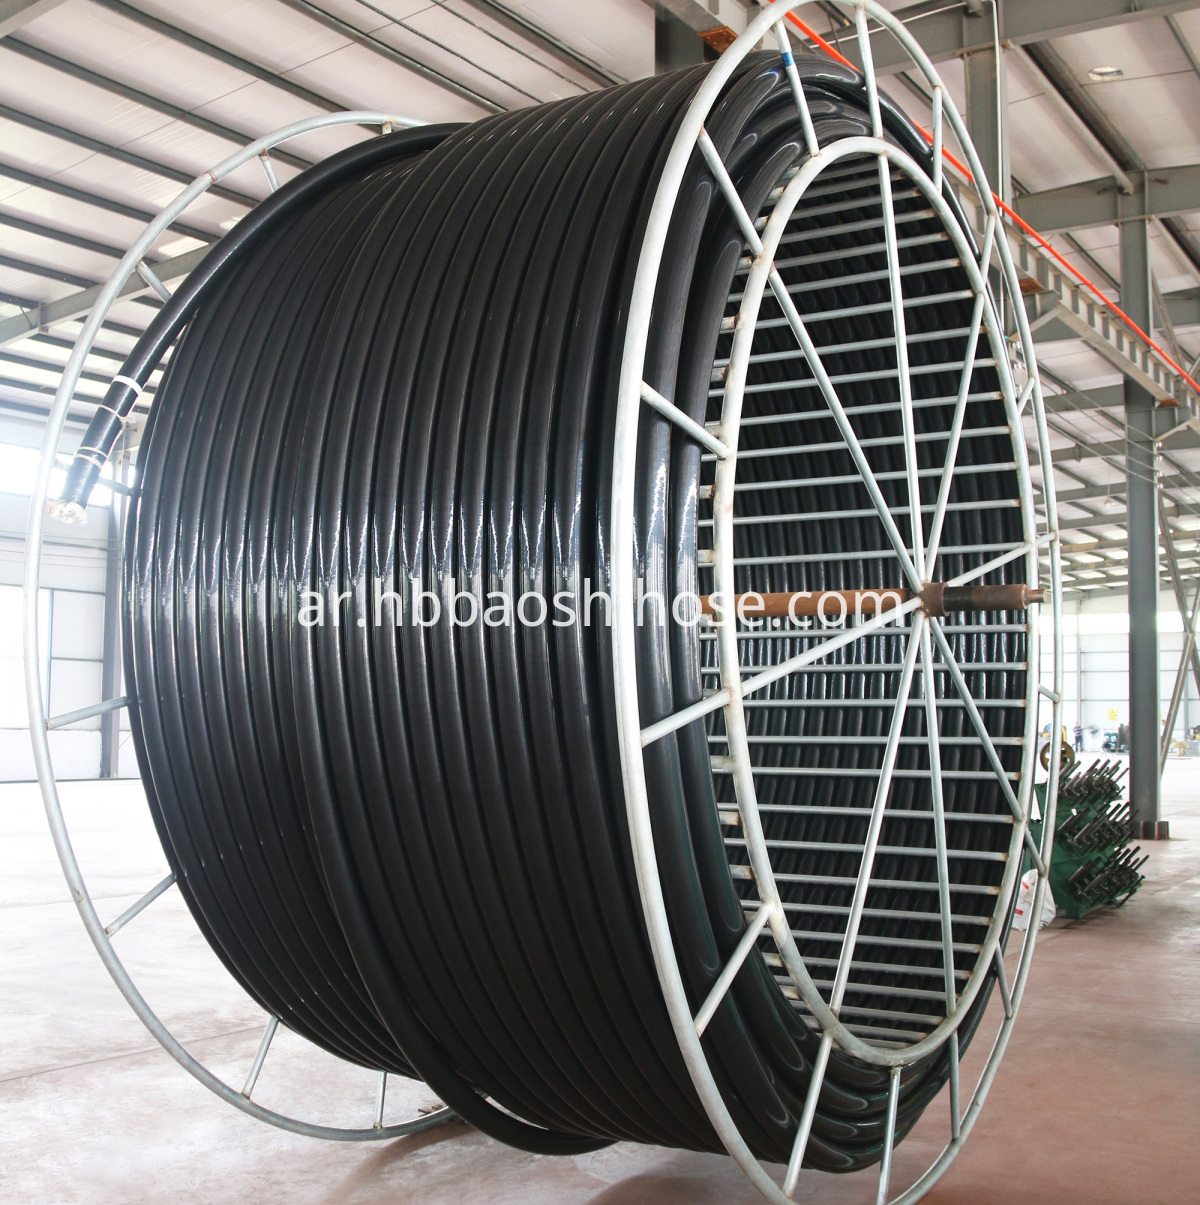 Flexible Composite Oil Injection Pipe